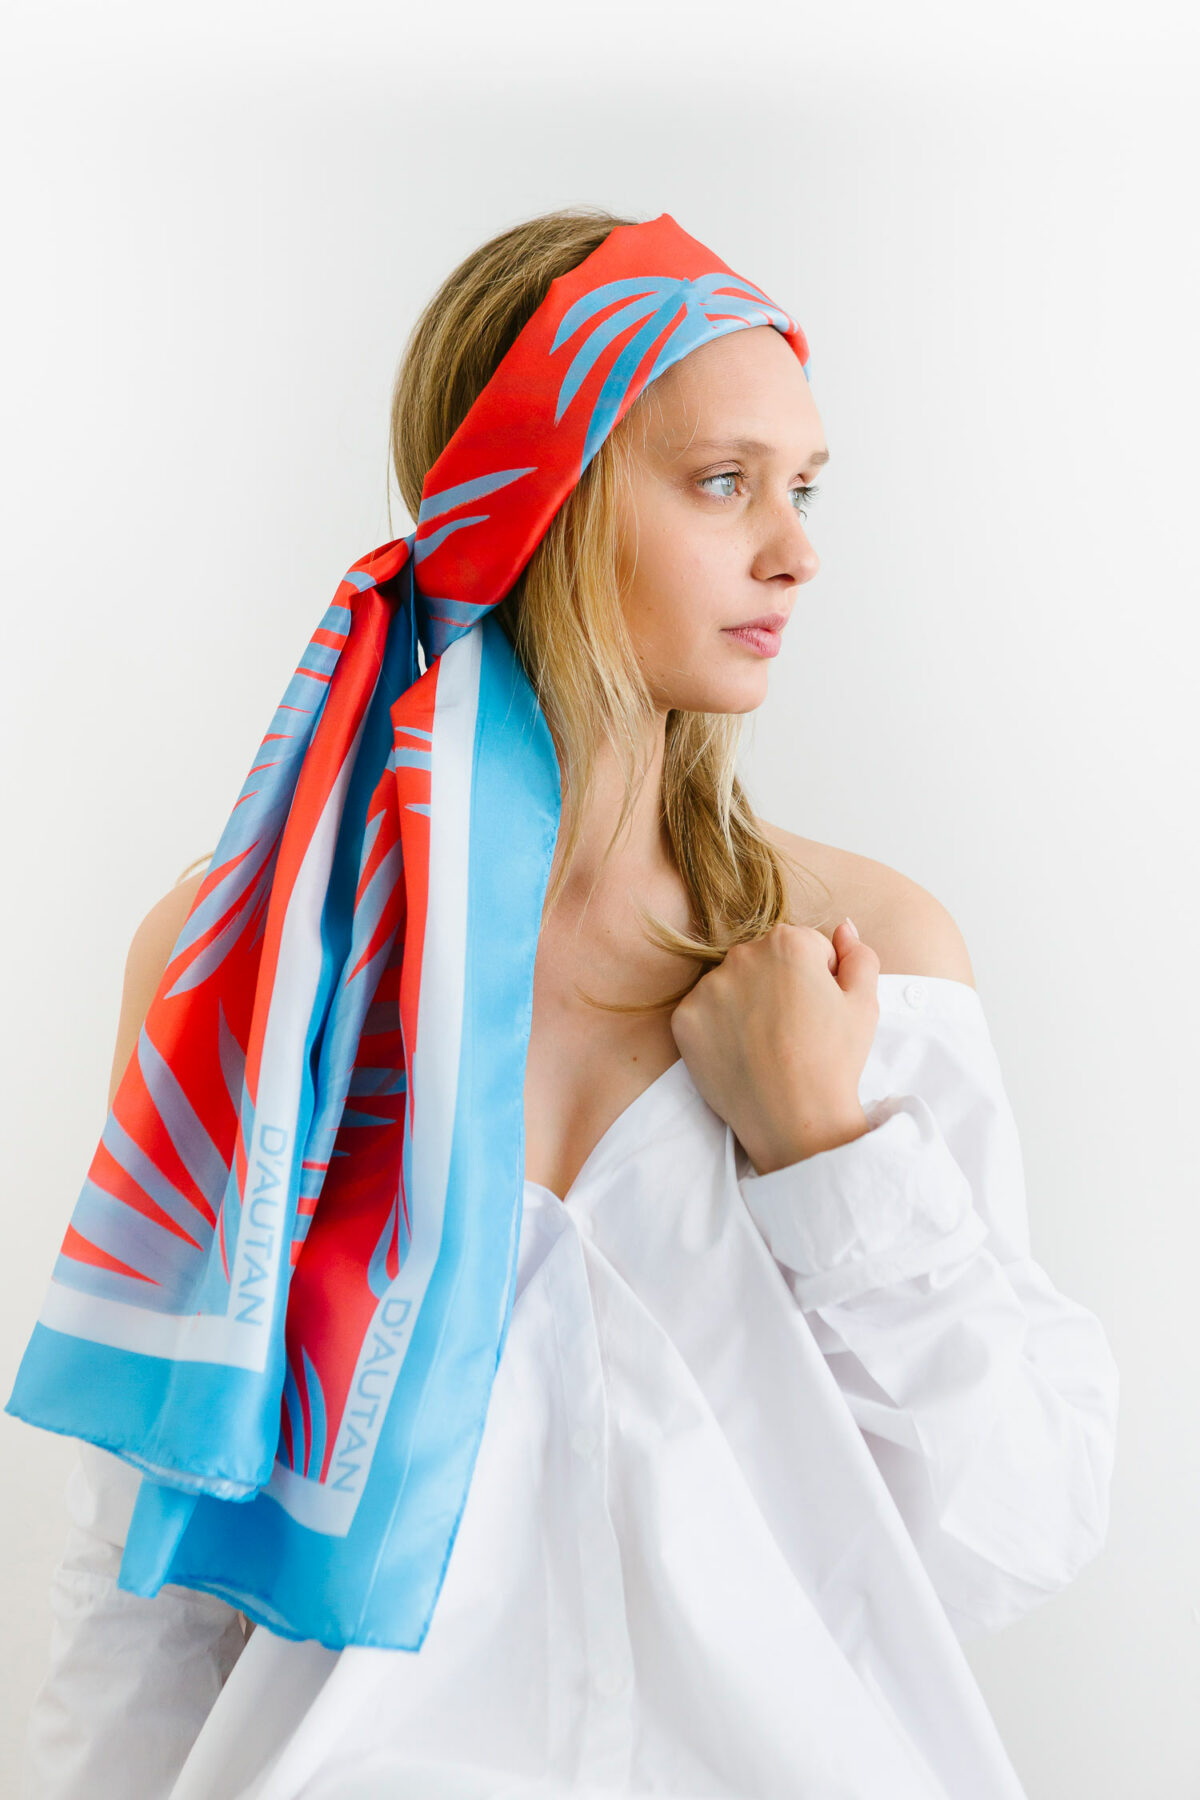 woman with a blue and red scarf on her head